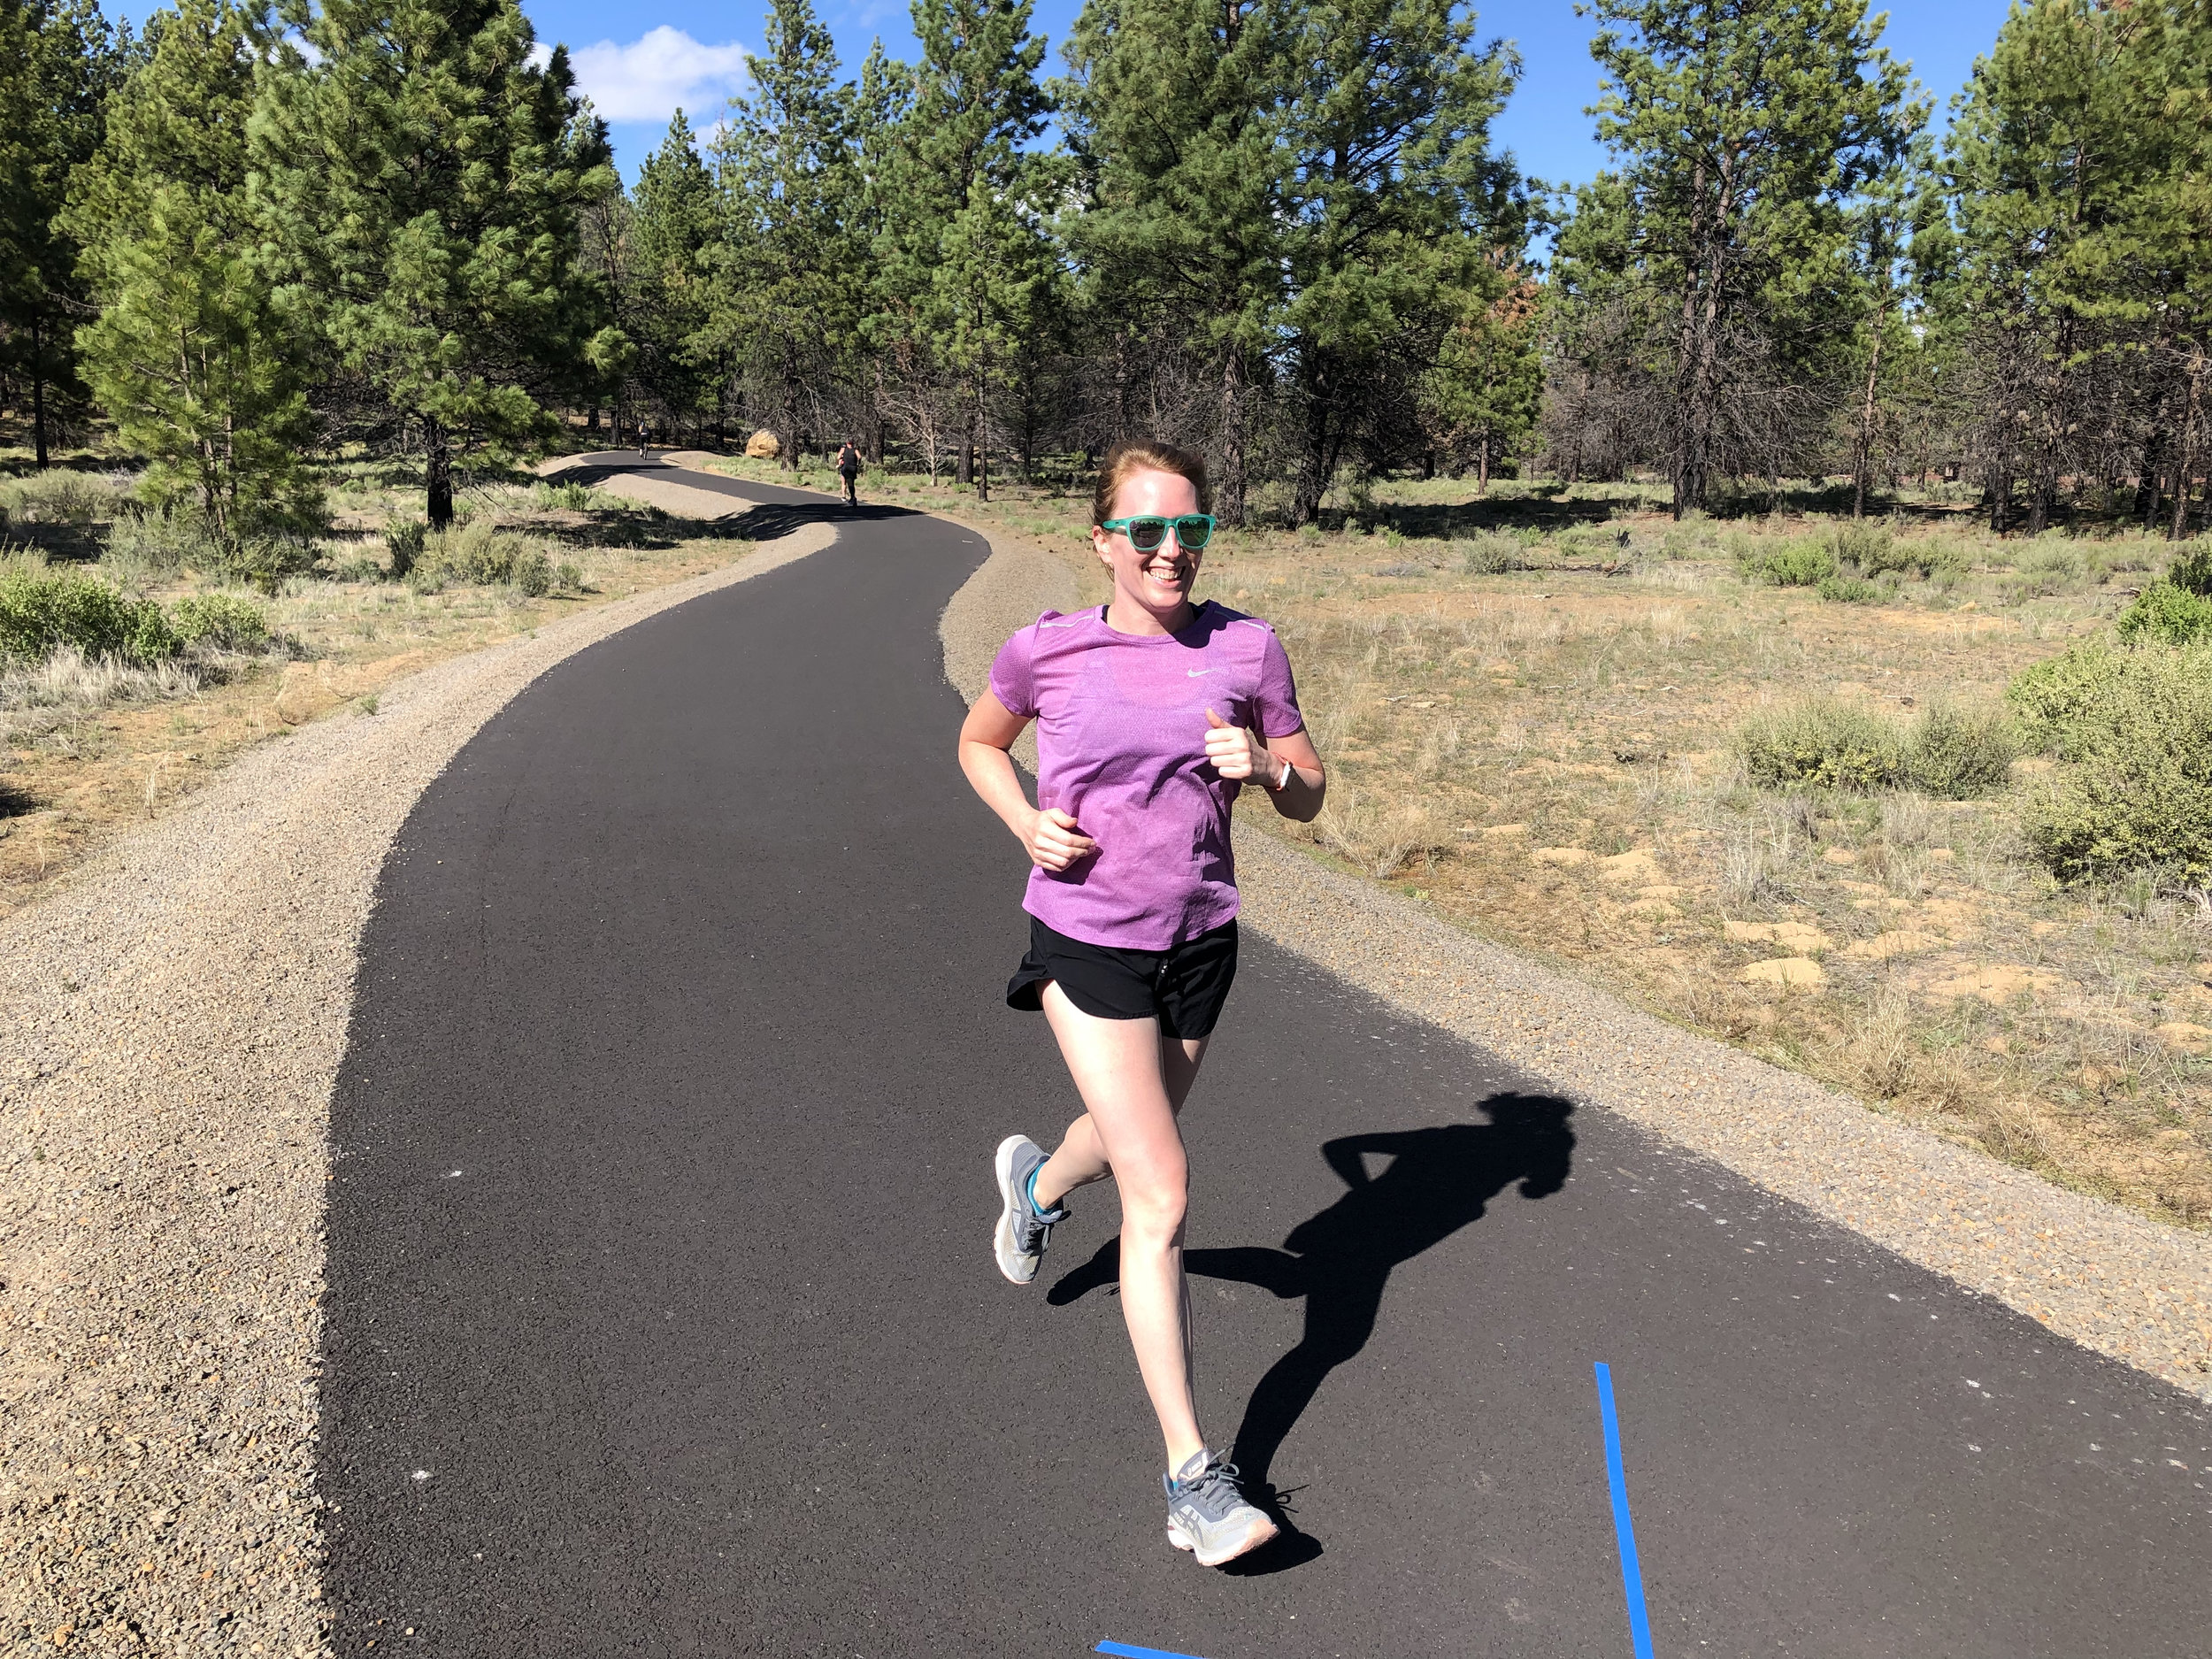 Molly_Running_Bend_2019.jpg